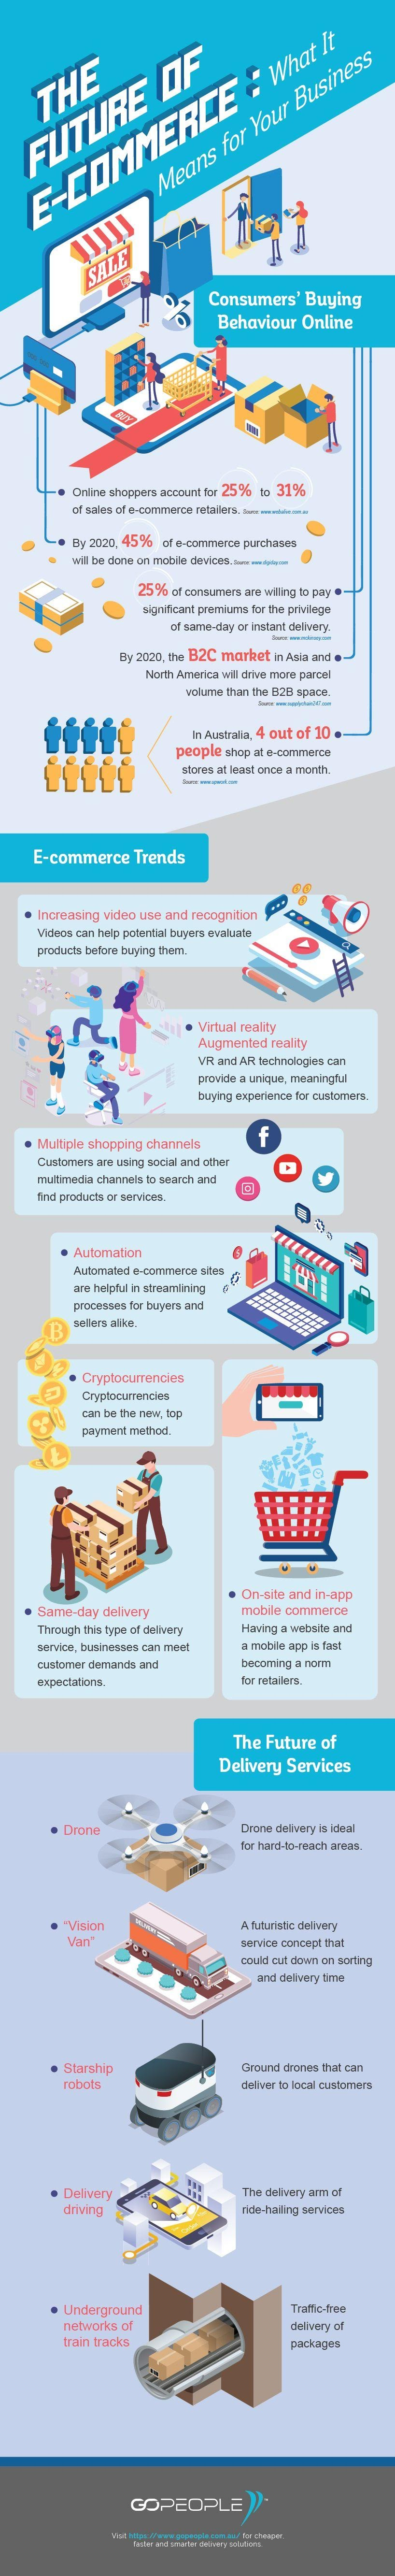 The Future of Ecommerce: 17 Trends and Stats Online Shop Owners Should Know [Infographic]